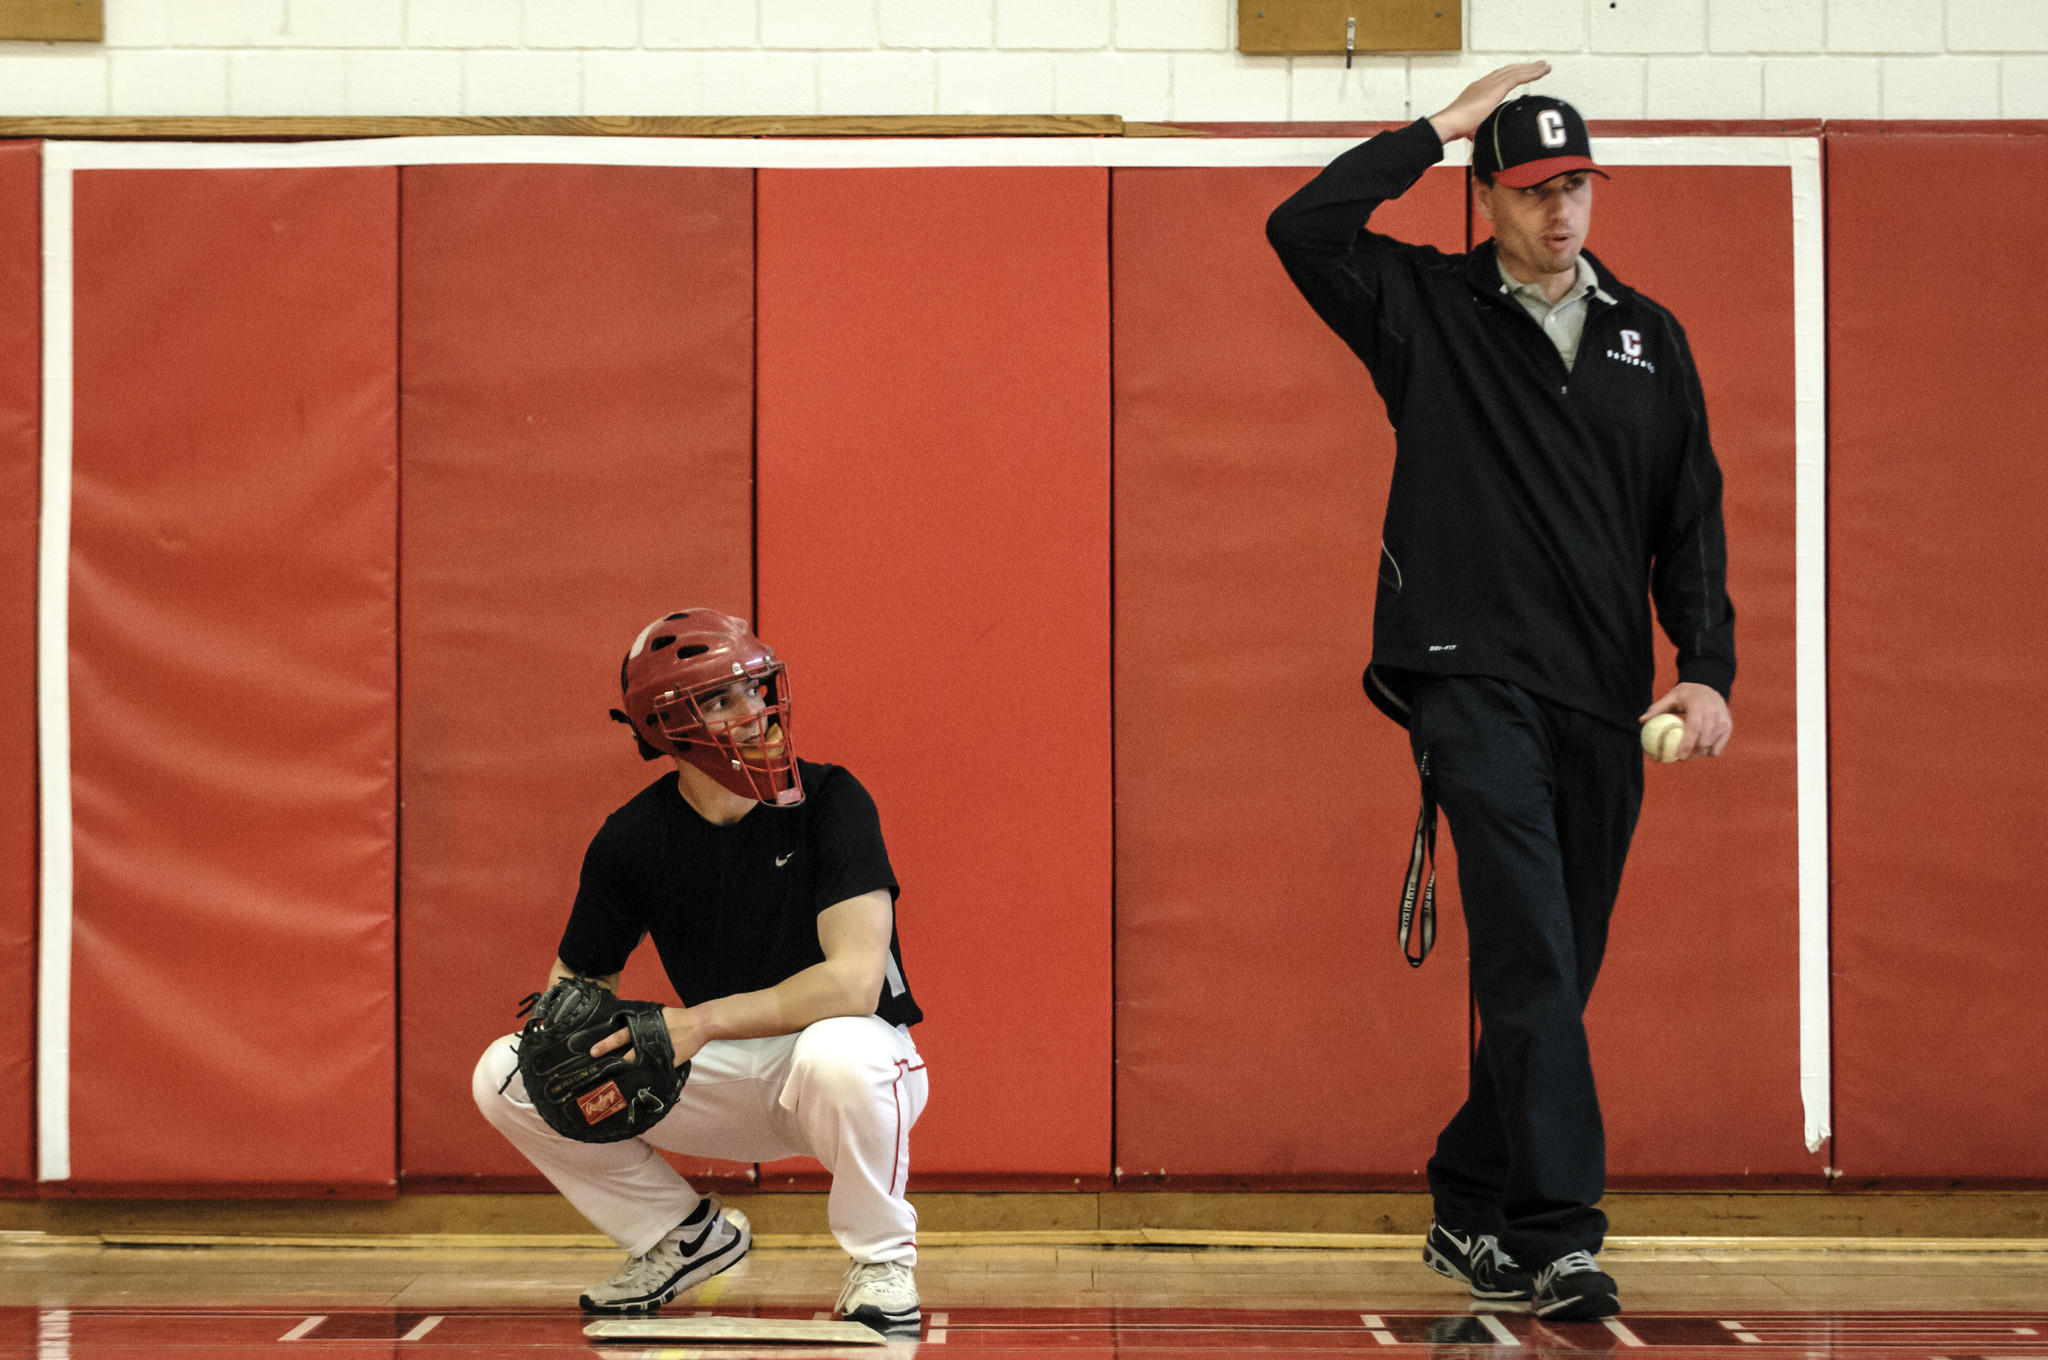 05.08.2014 - Cromwell, Ct - Cromwell catcher Kevin Radziewicz listens as coach Lewis Pappariella directs his players during practice. Photograph by Mark Mirko | mmirko@courant.com